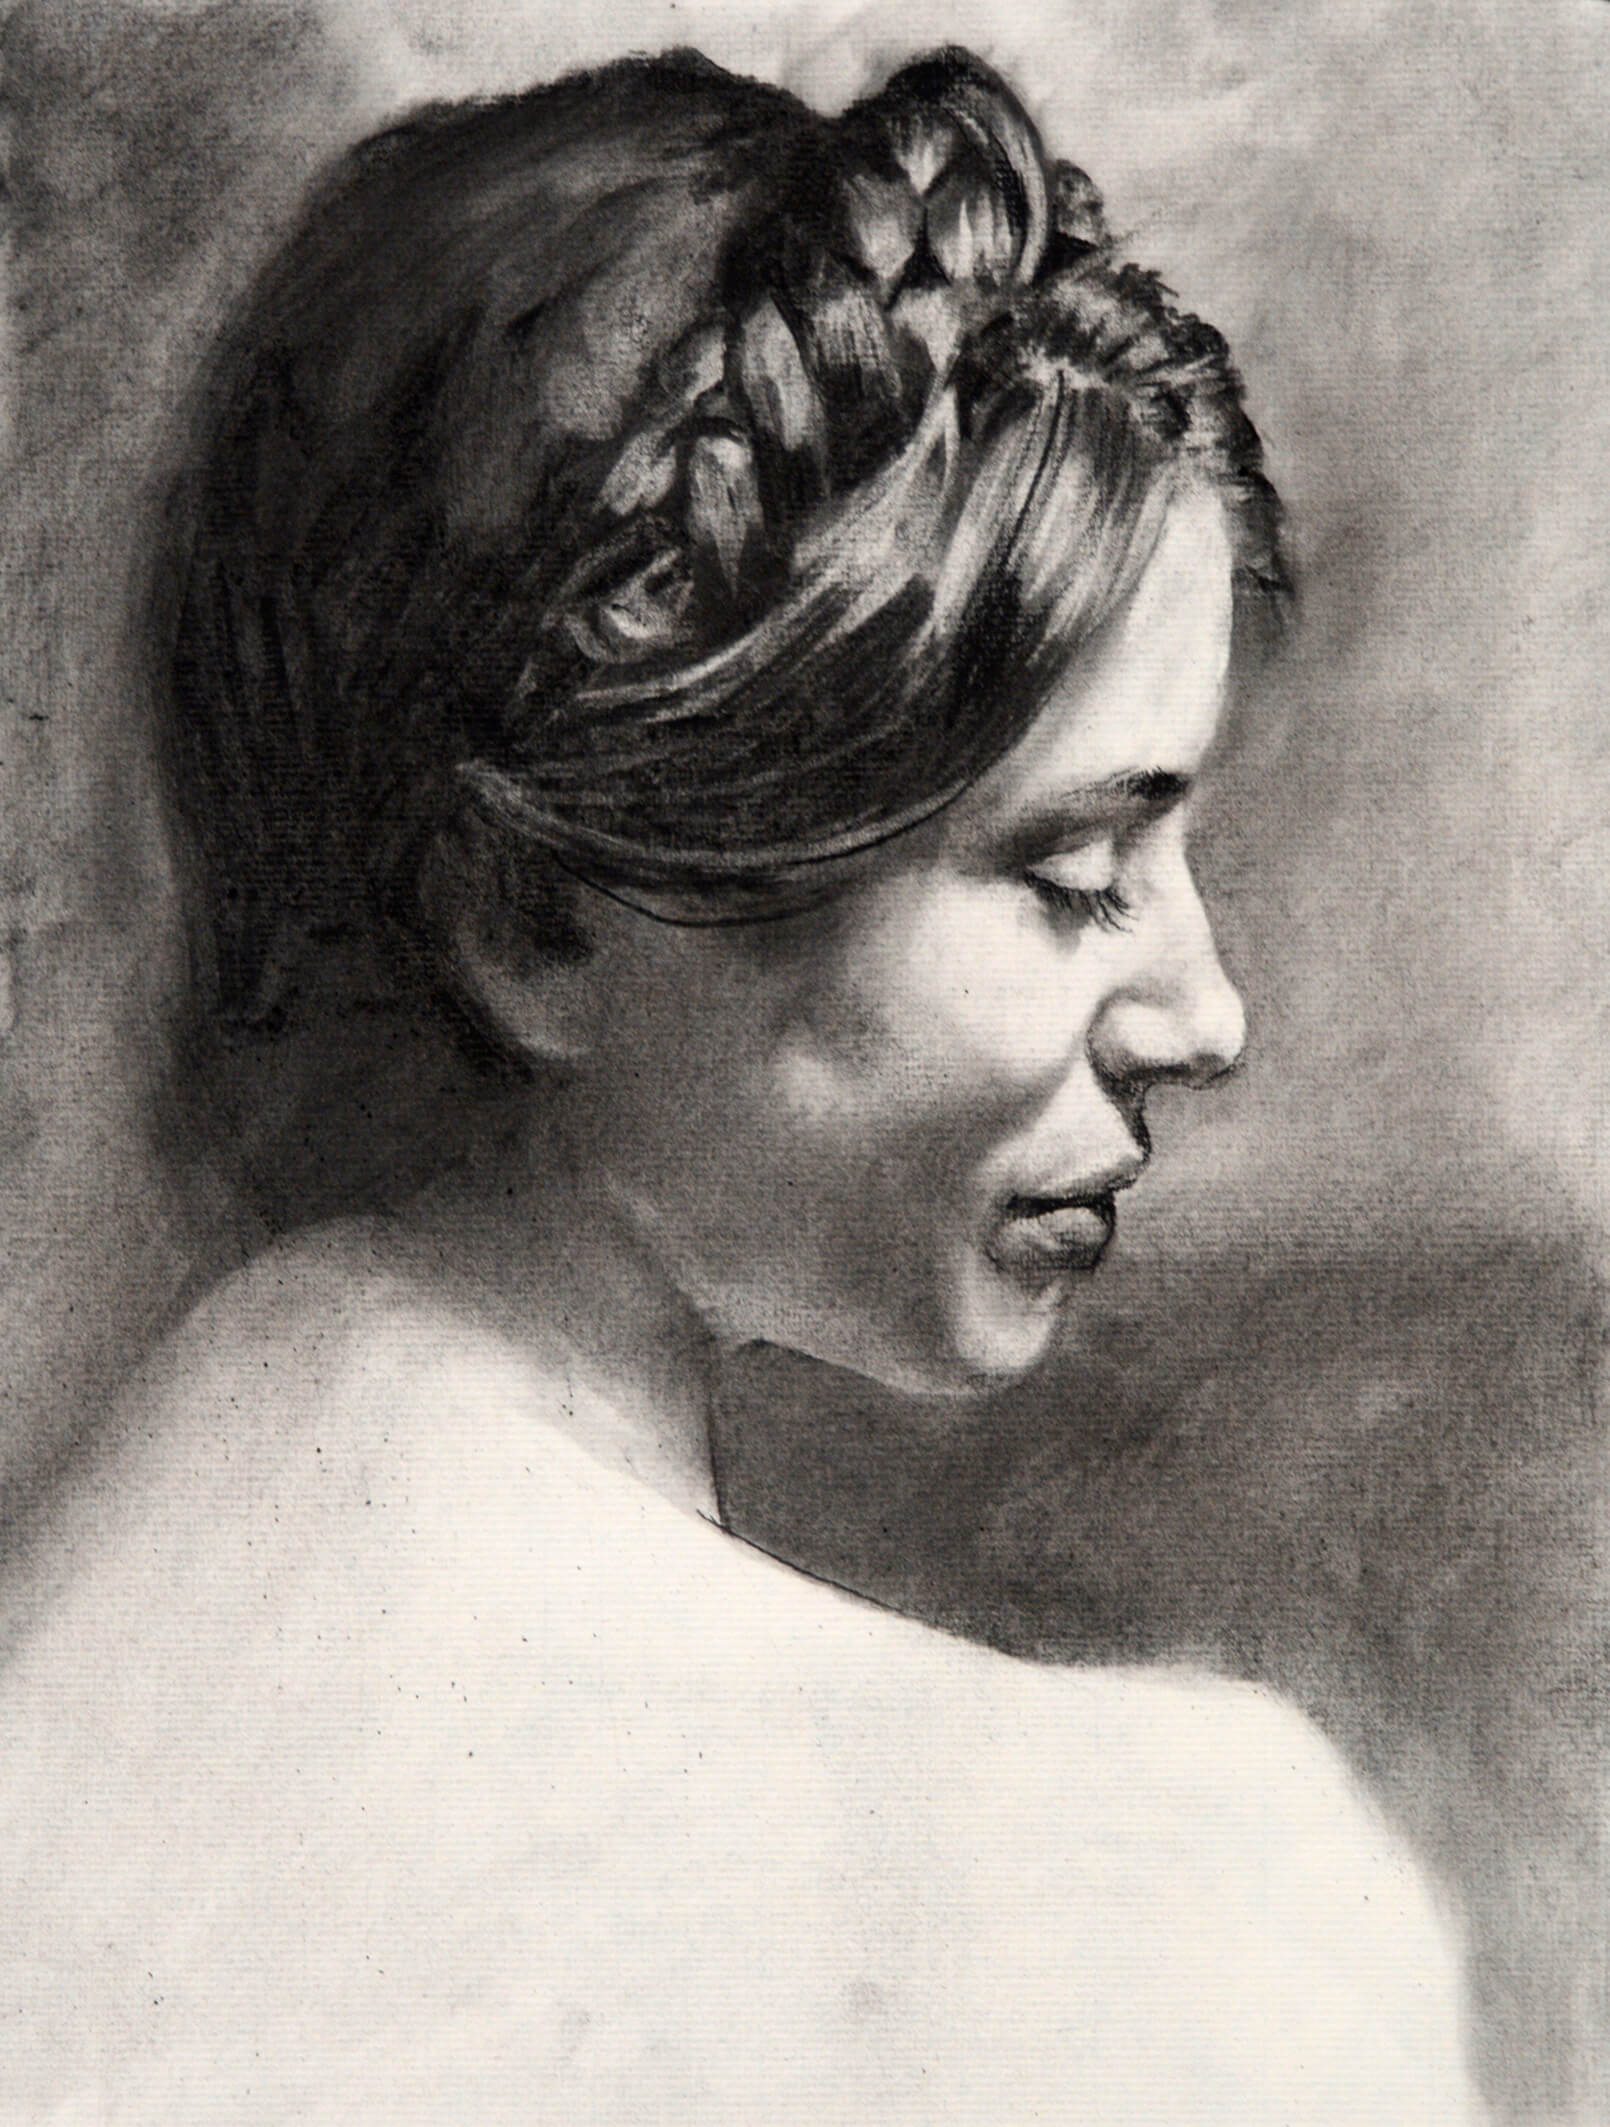 Charcoal Drawing f a Woman with a Braid ©2021 Lenin Delsol